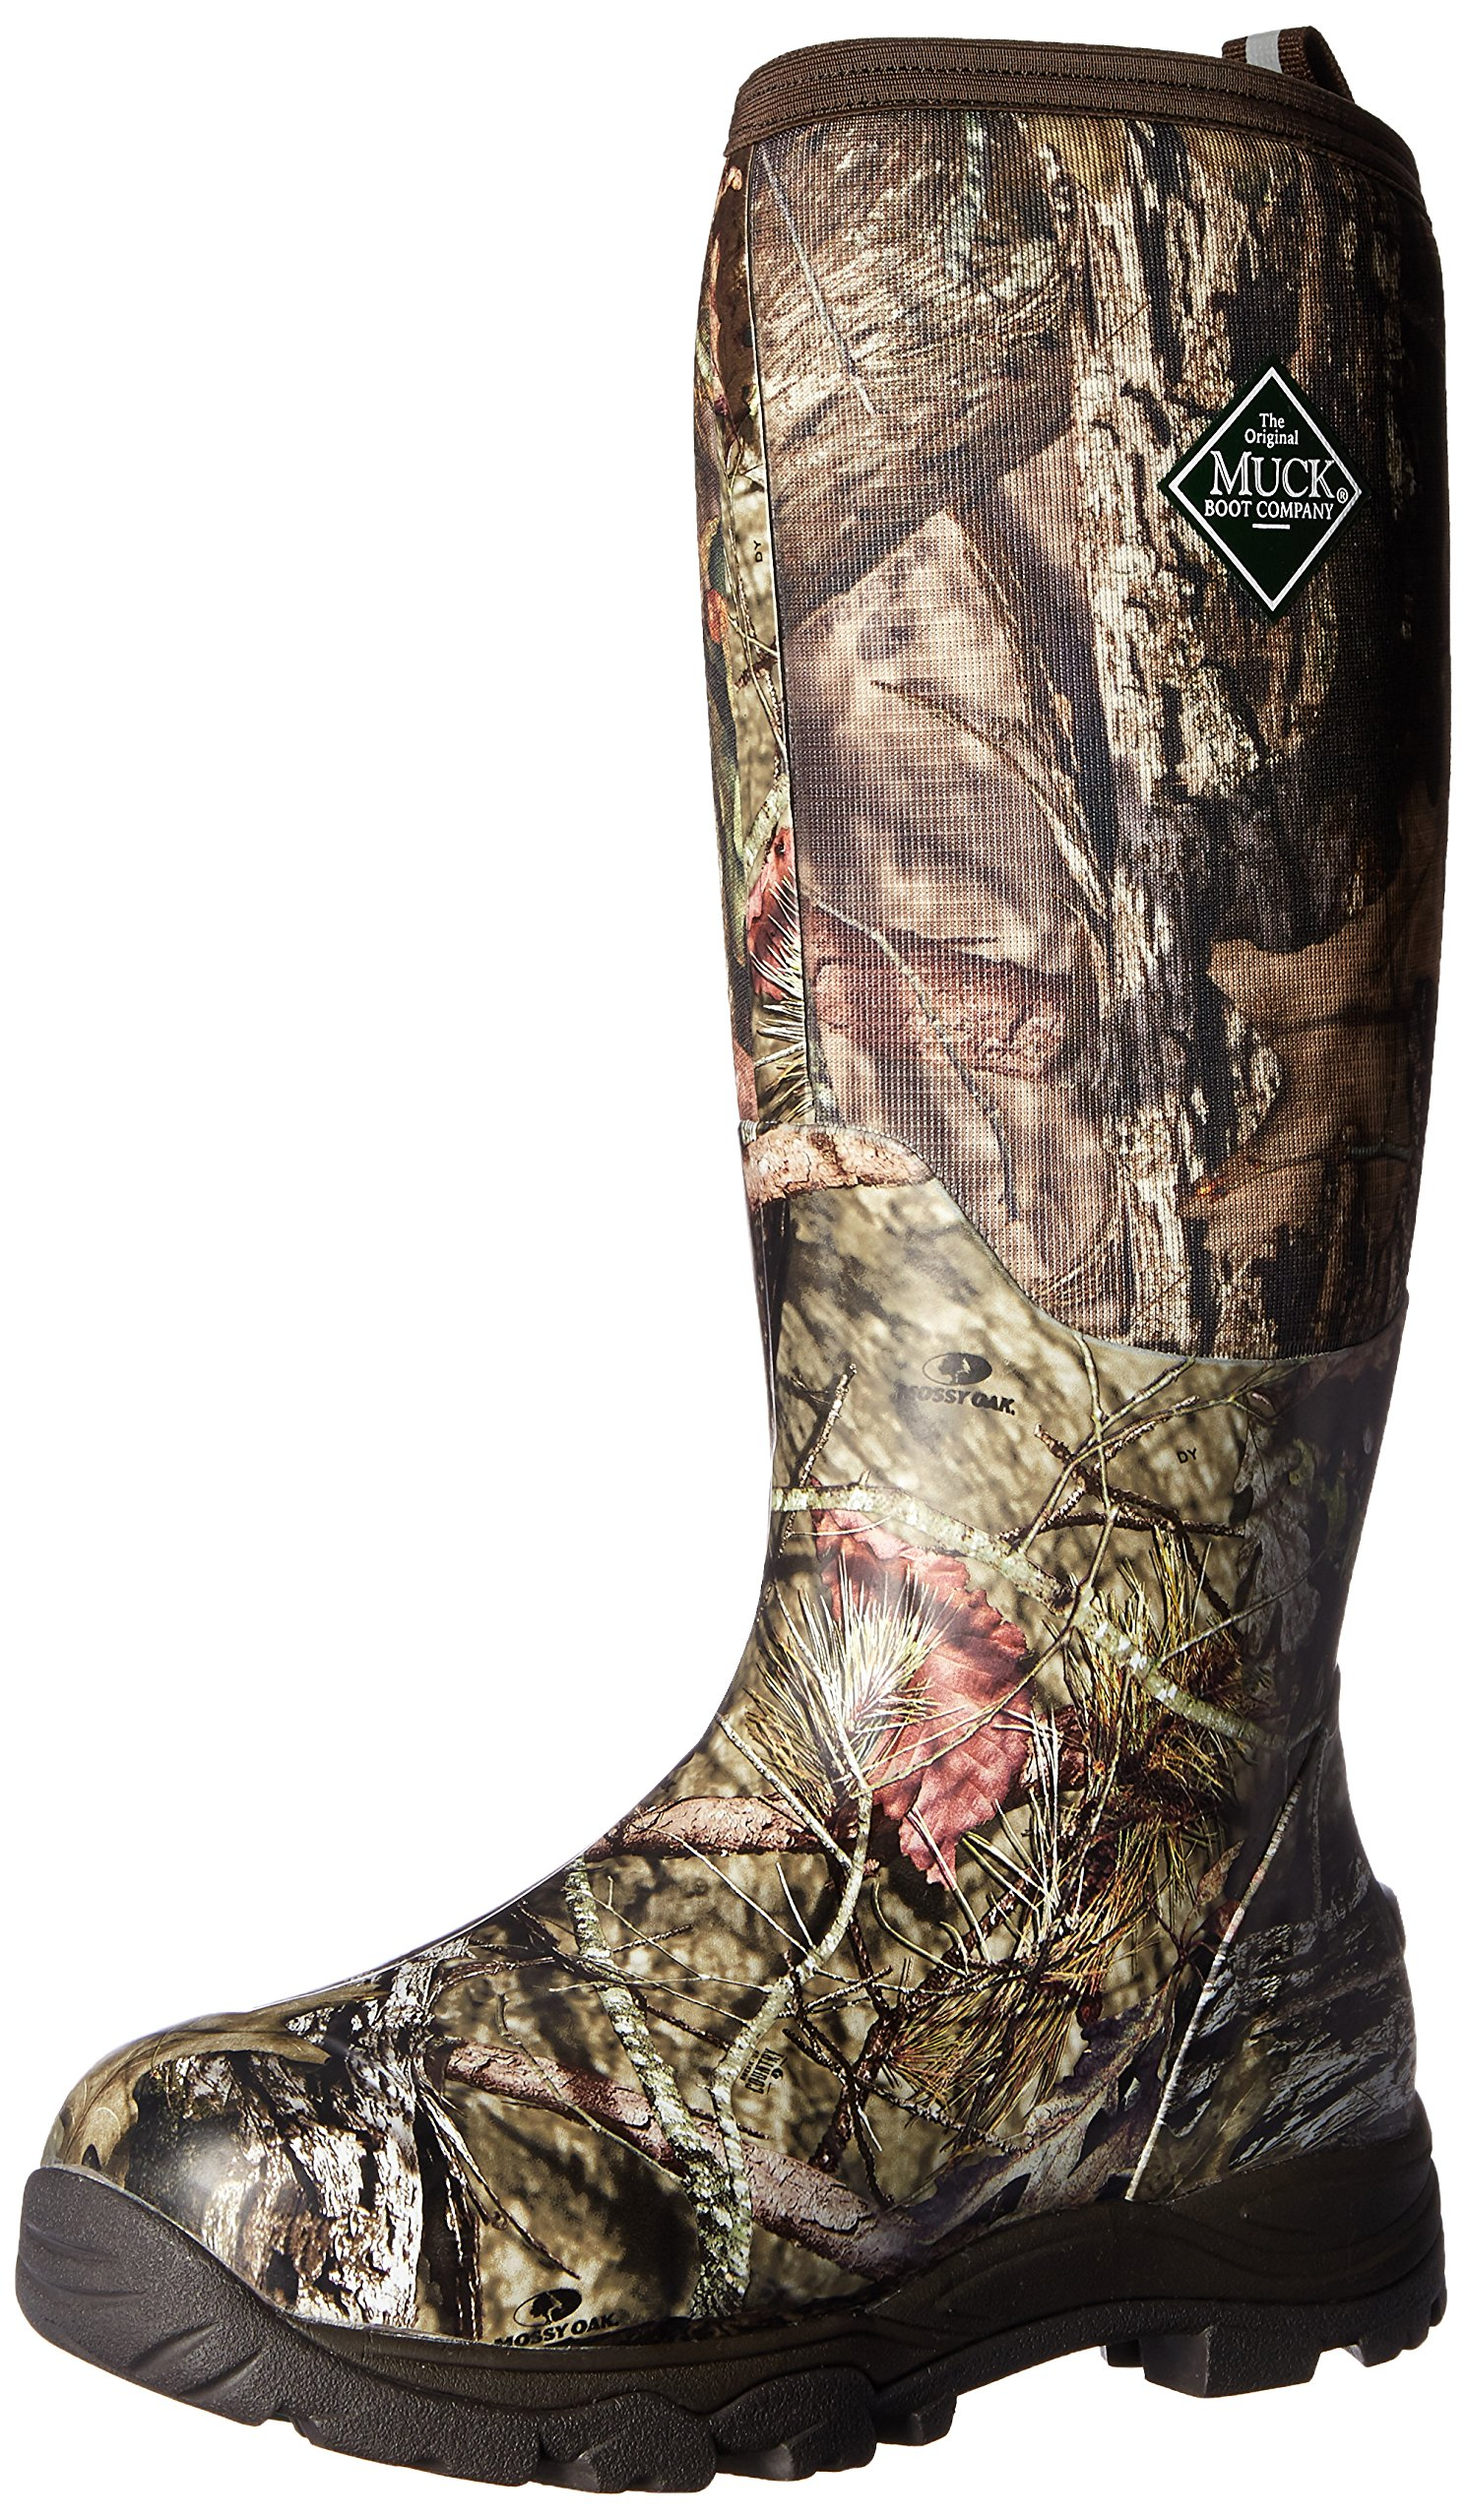 Muck Woody Plus Rubber Scent-Masking Insulated Men's Hunting Boots by Muck Boot